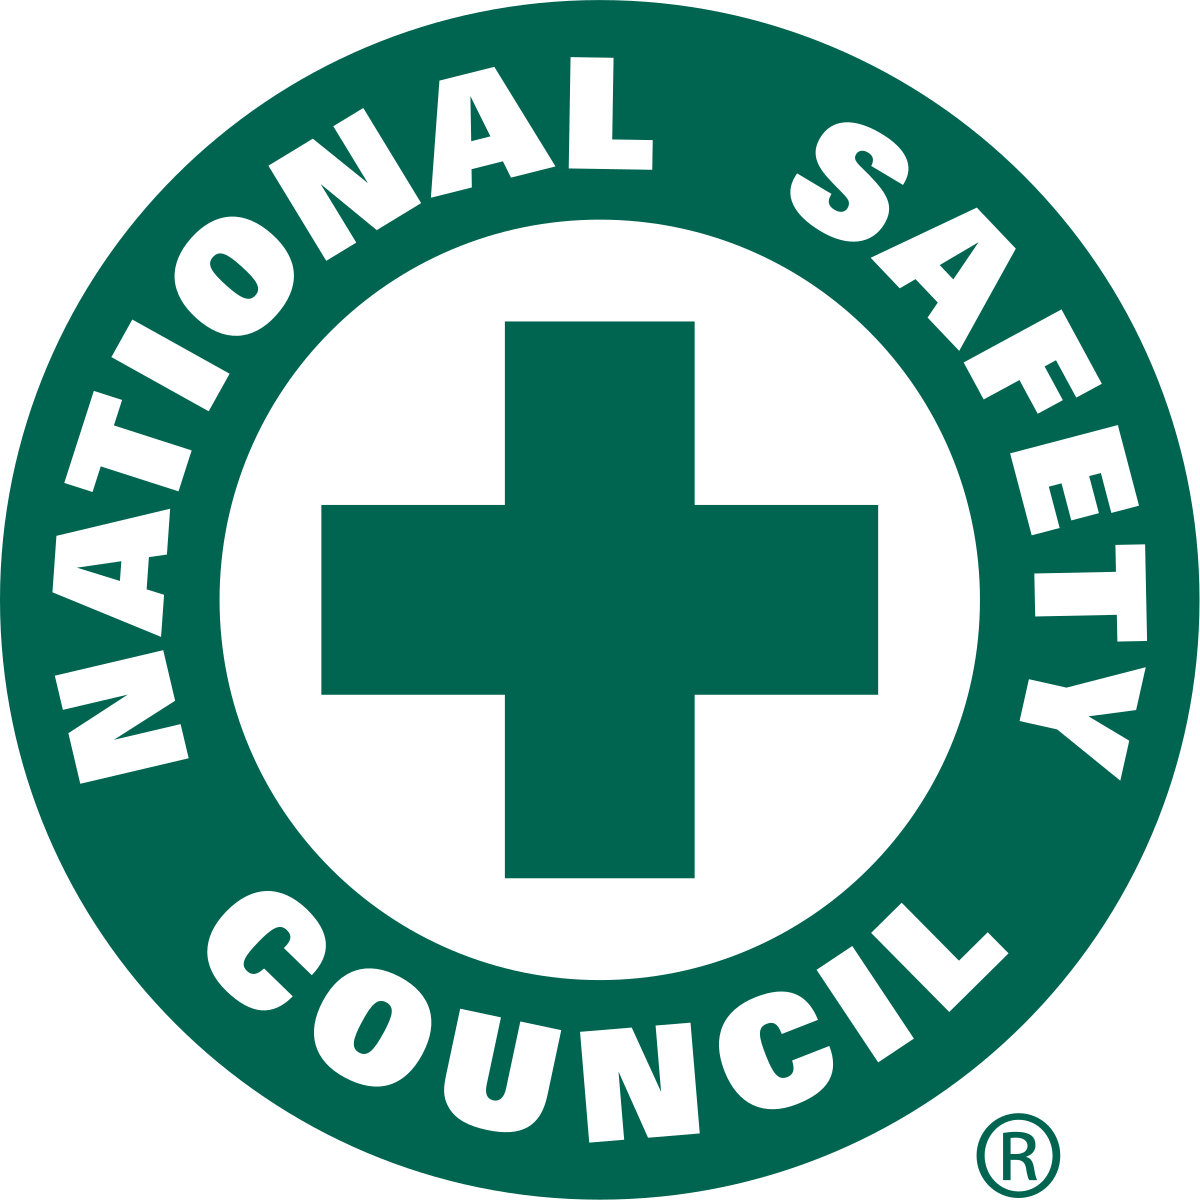 National Safety Council (NSC)